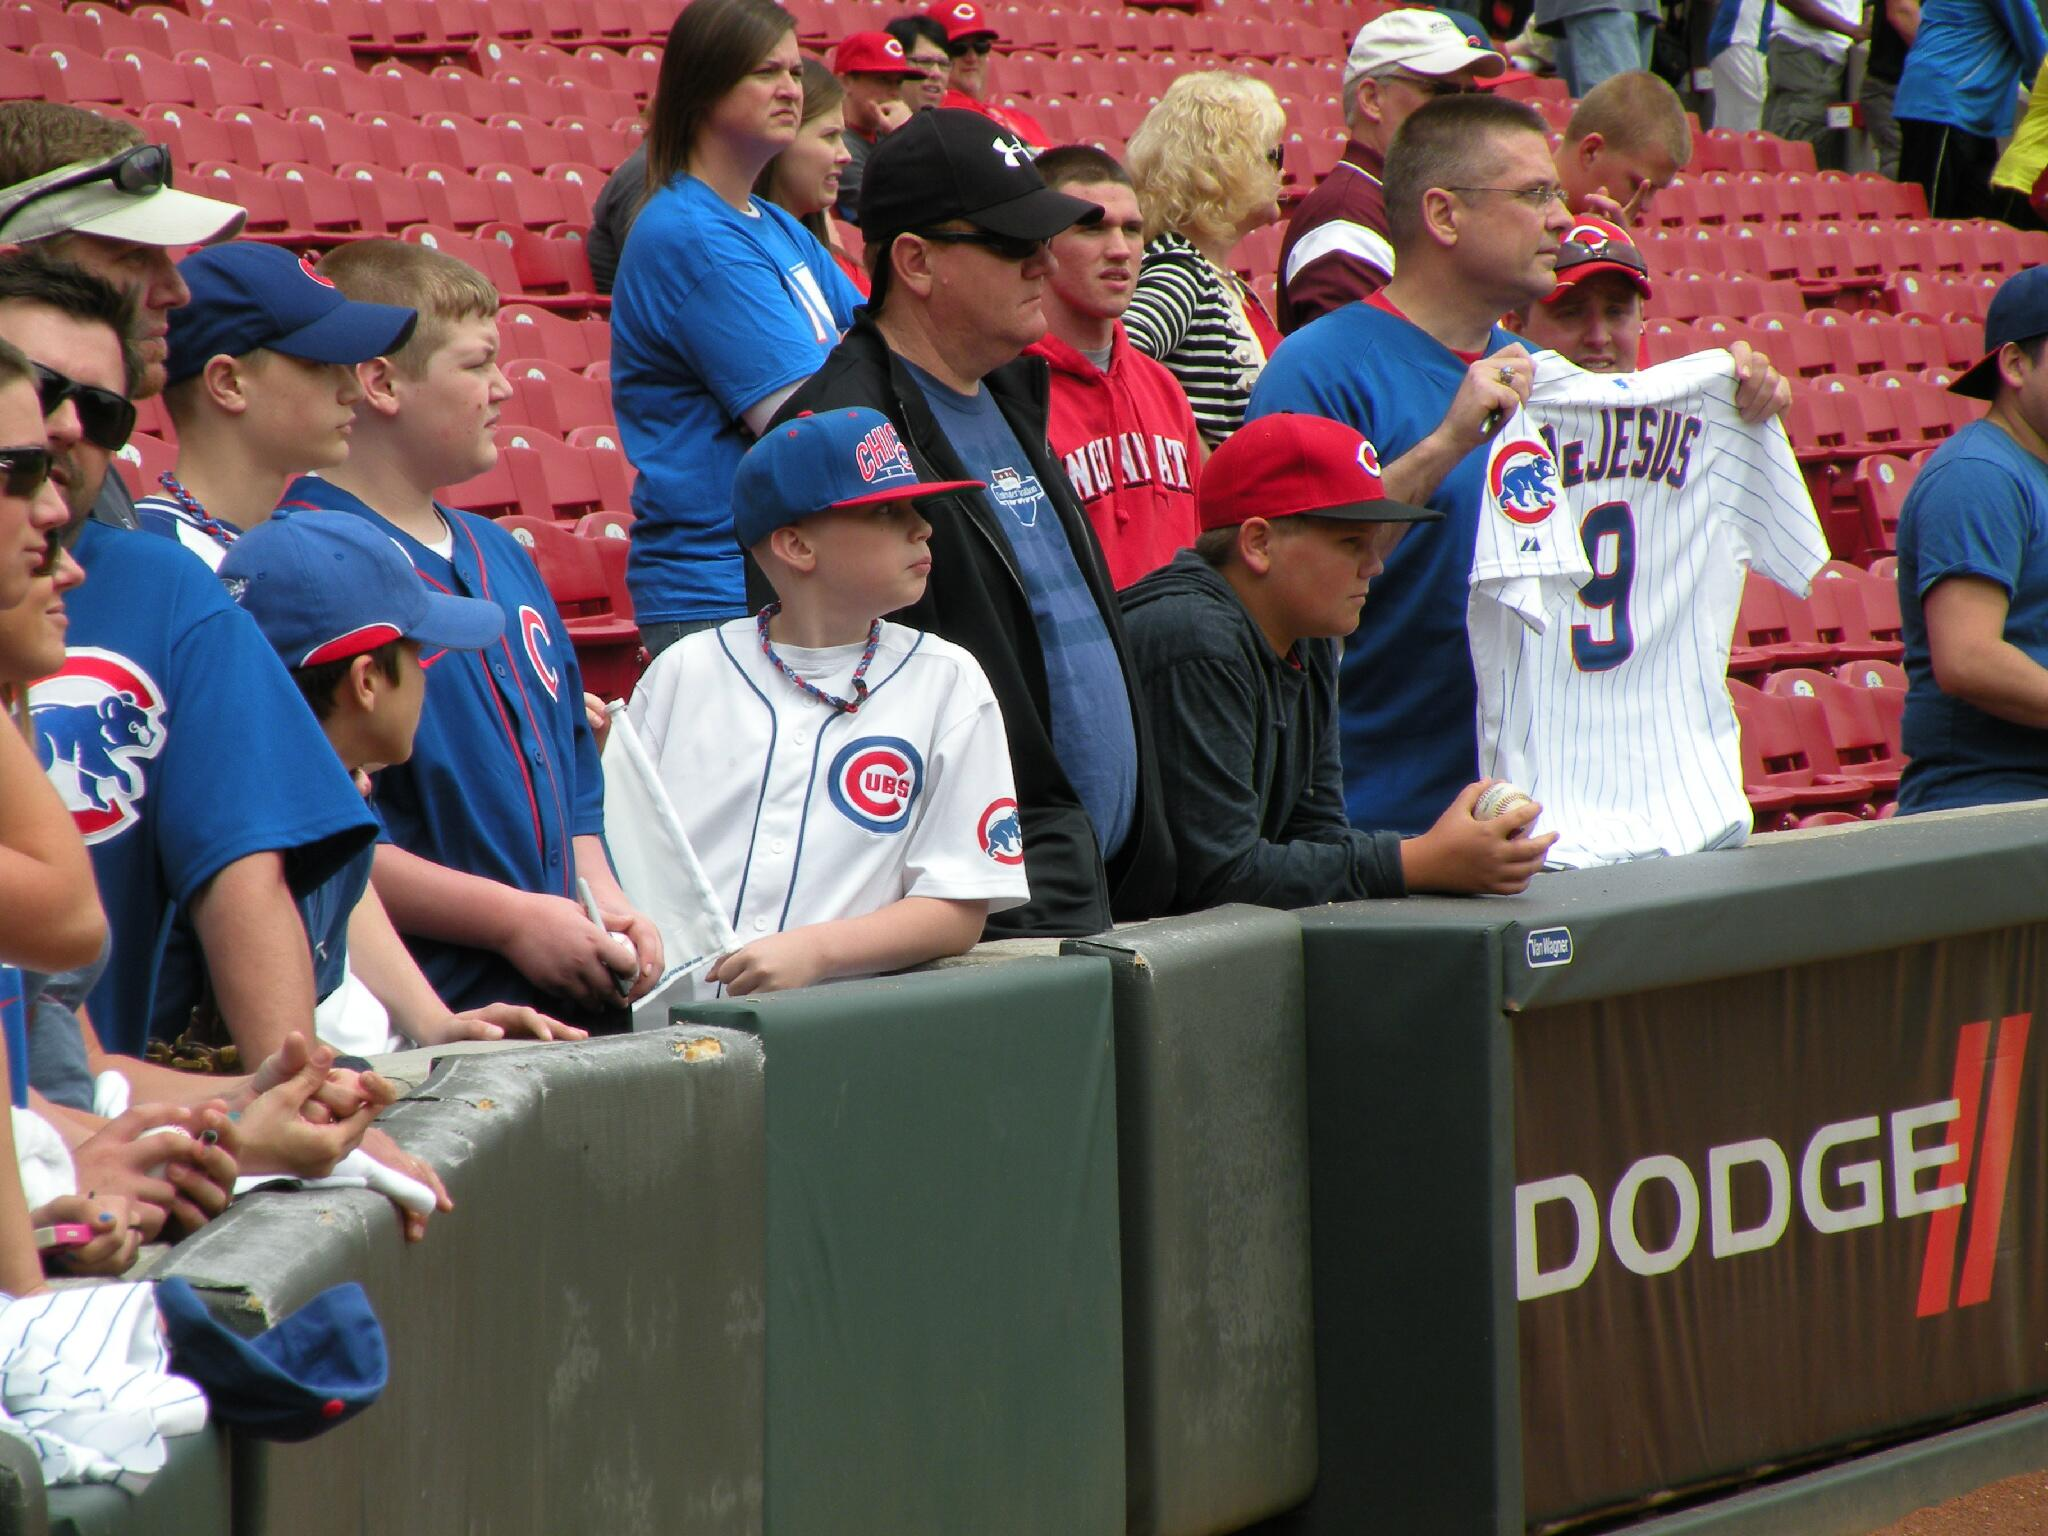 #Cubs take on the #Reds in Cincinnati in 10 minutes on @WGNTV and @WGNRadio. http://t.co/YEfqO3ATVd